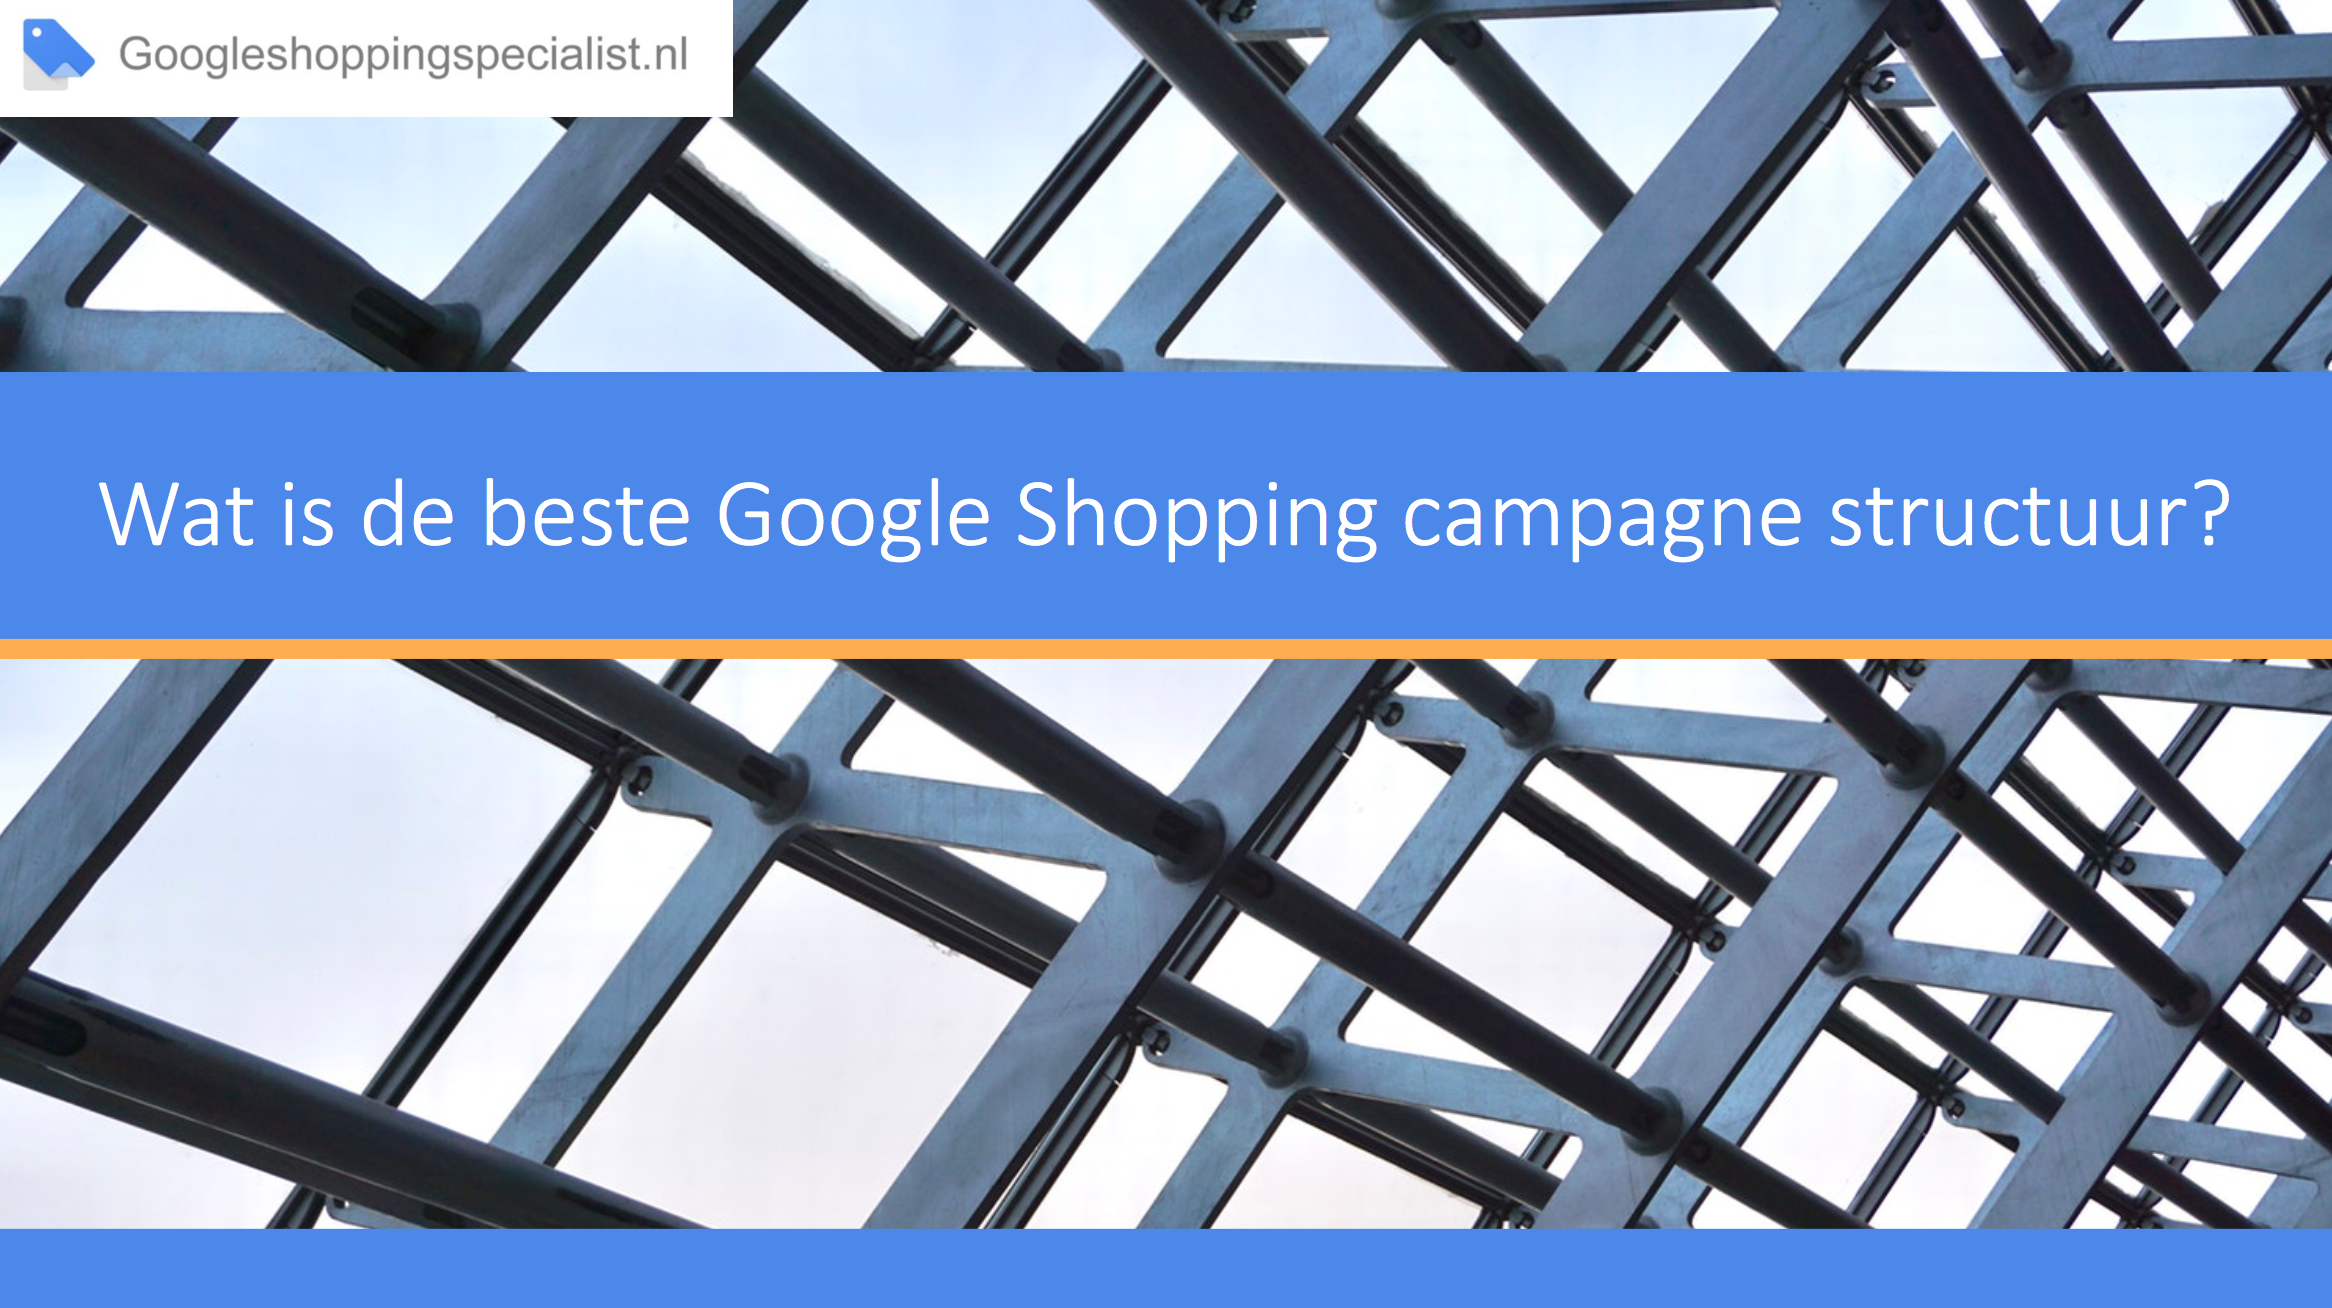 Wat is de beste Google Shopping campagne structuur? e-book - GoogleShoppingSpecialist